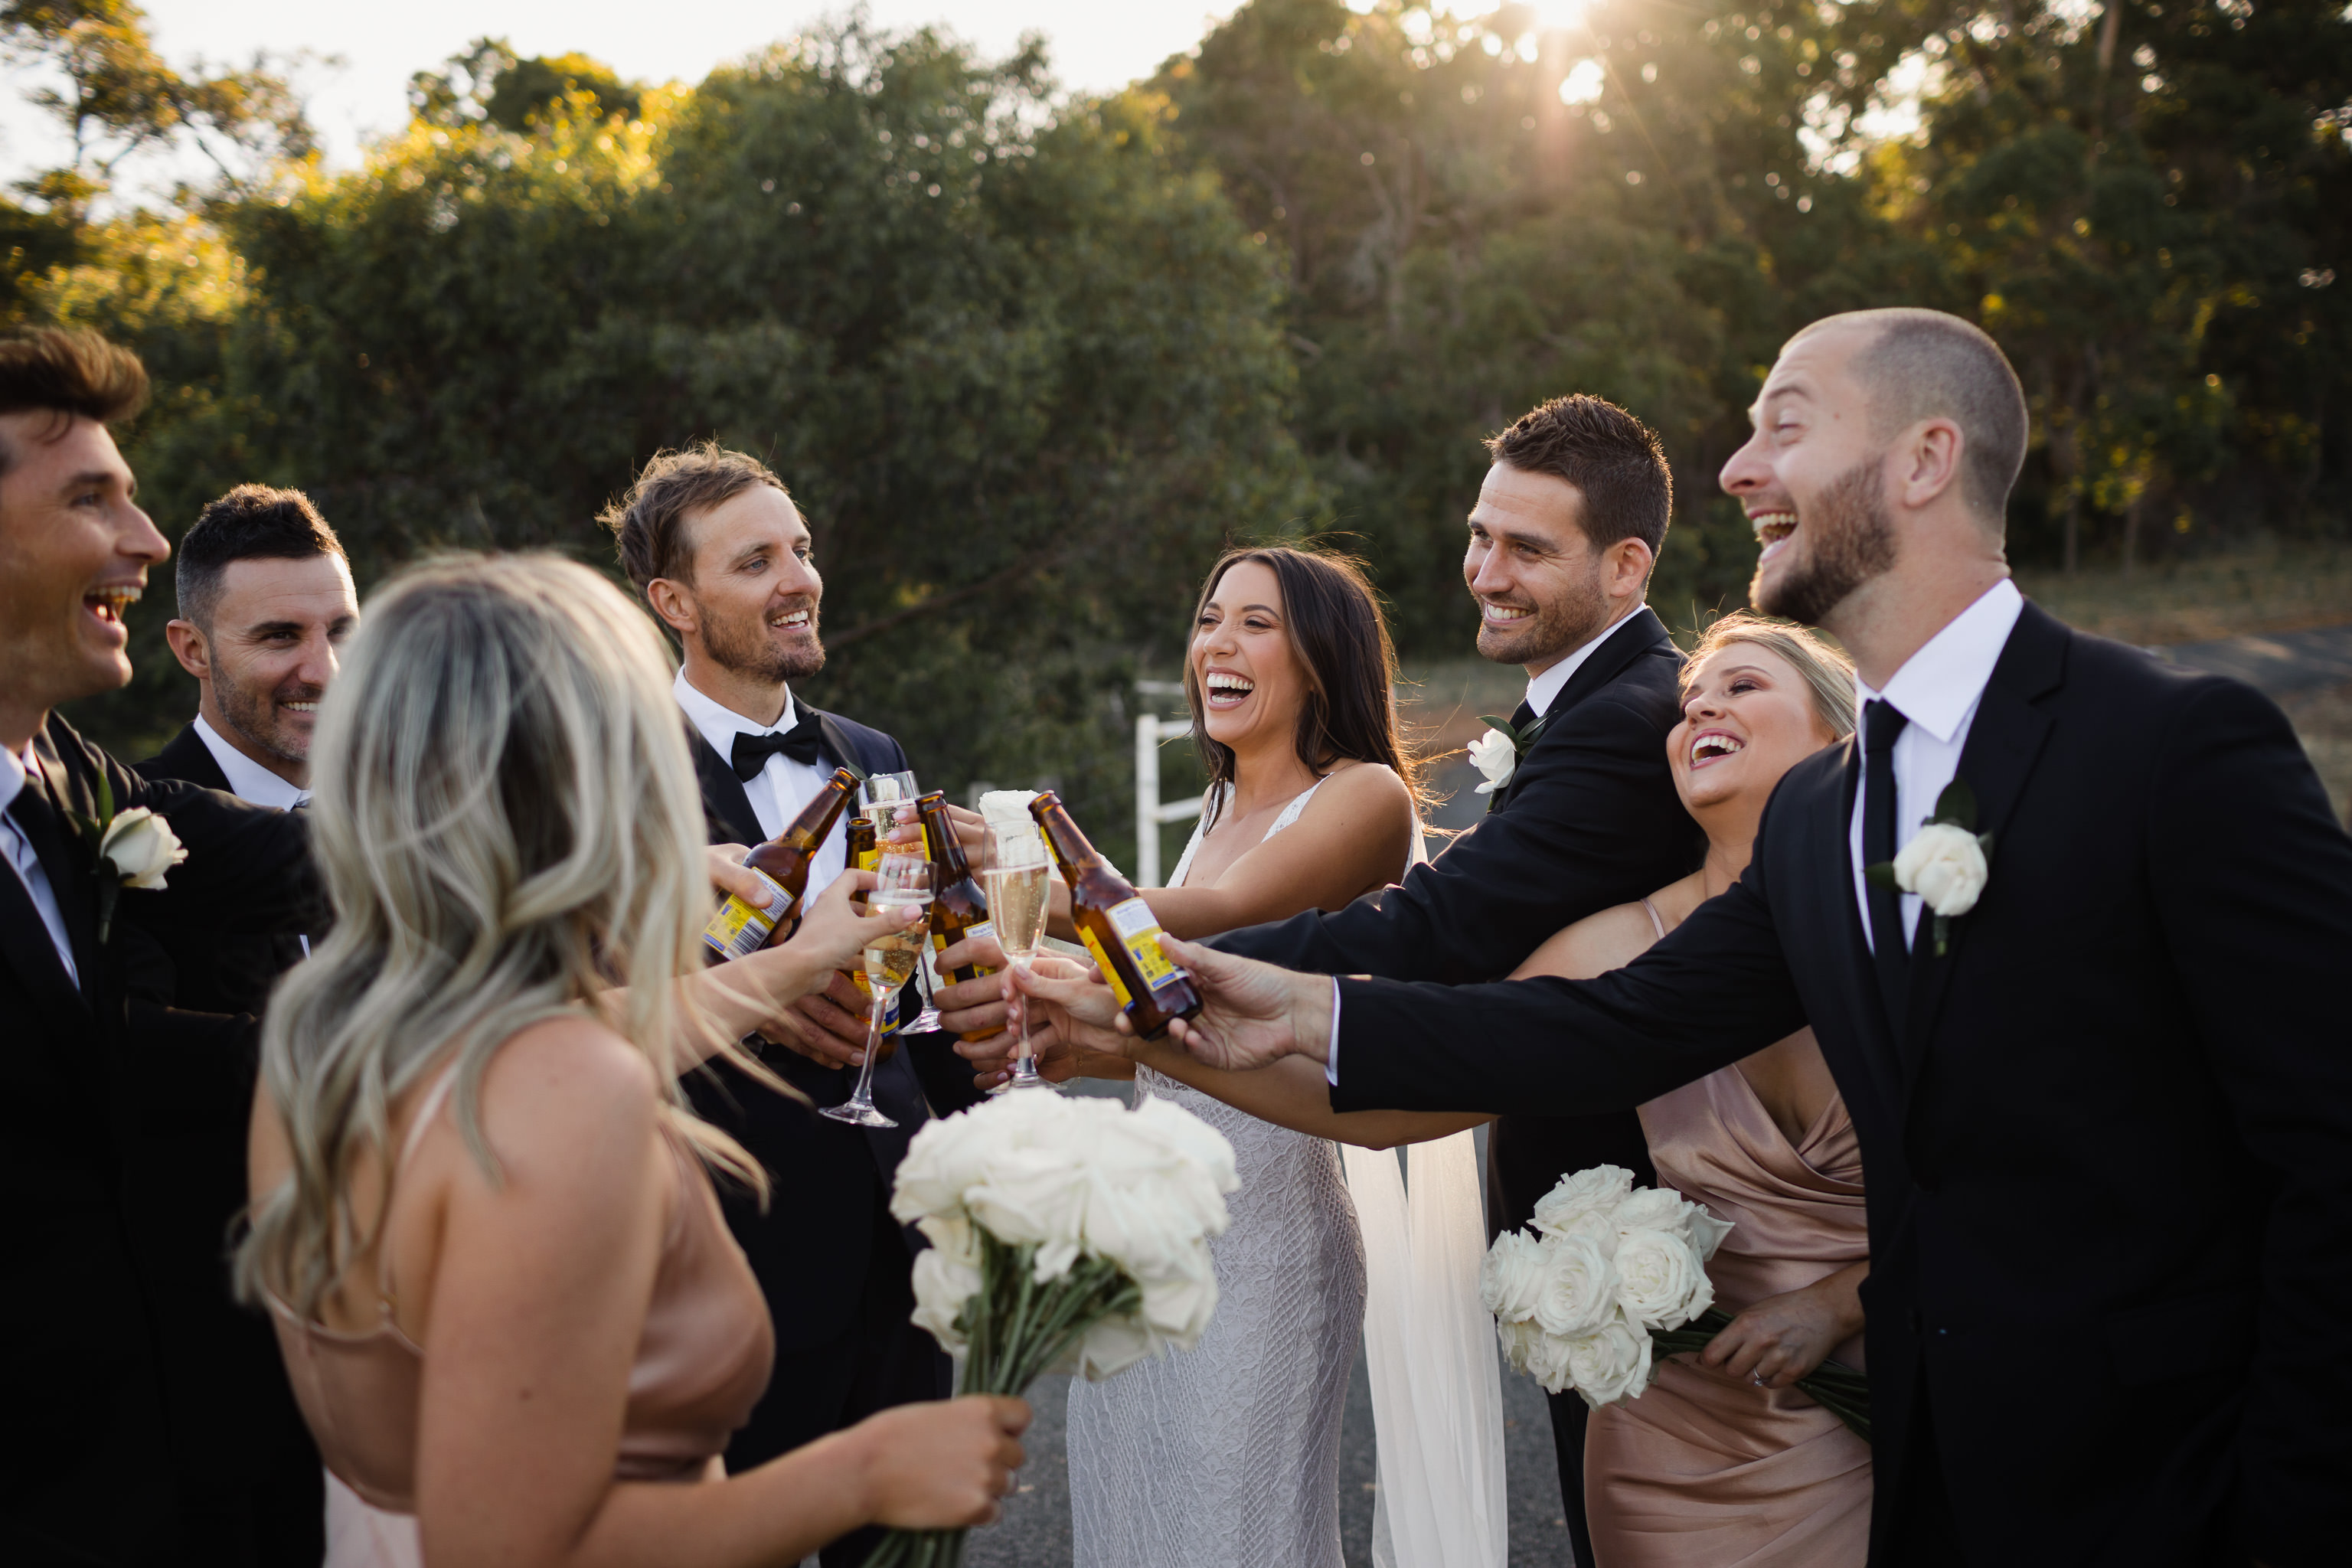 Bridesmaids and groomsmen clinking beers and champagne glasses and enjoying a drink at a wedding at Meelup Farmhouse